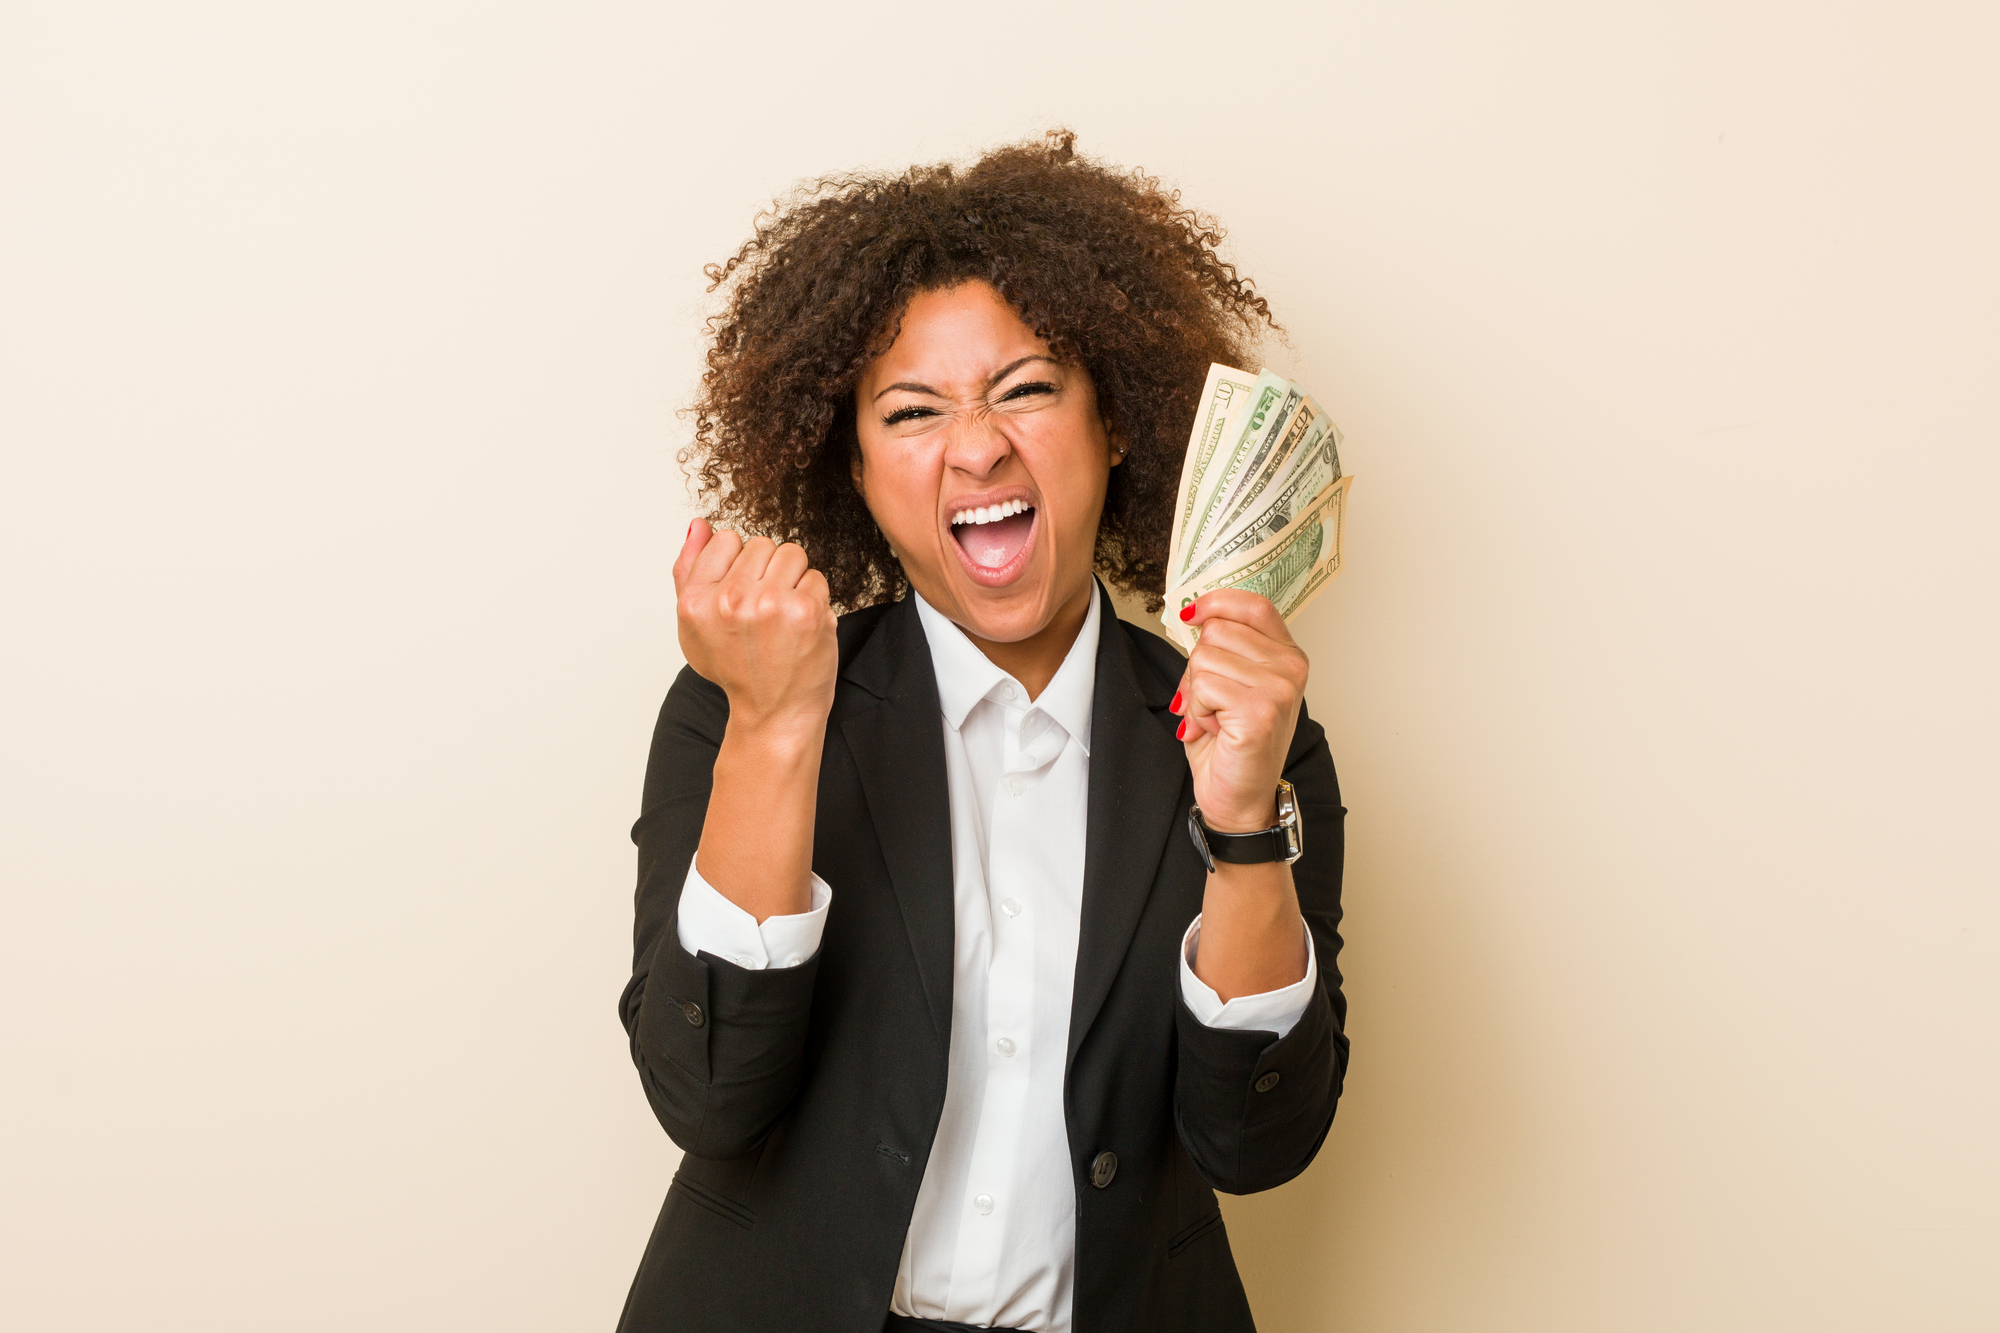 Young african american woman holding dollars cheering carefree and excited Victory concept